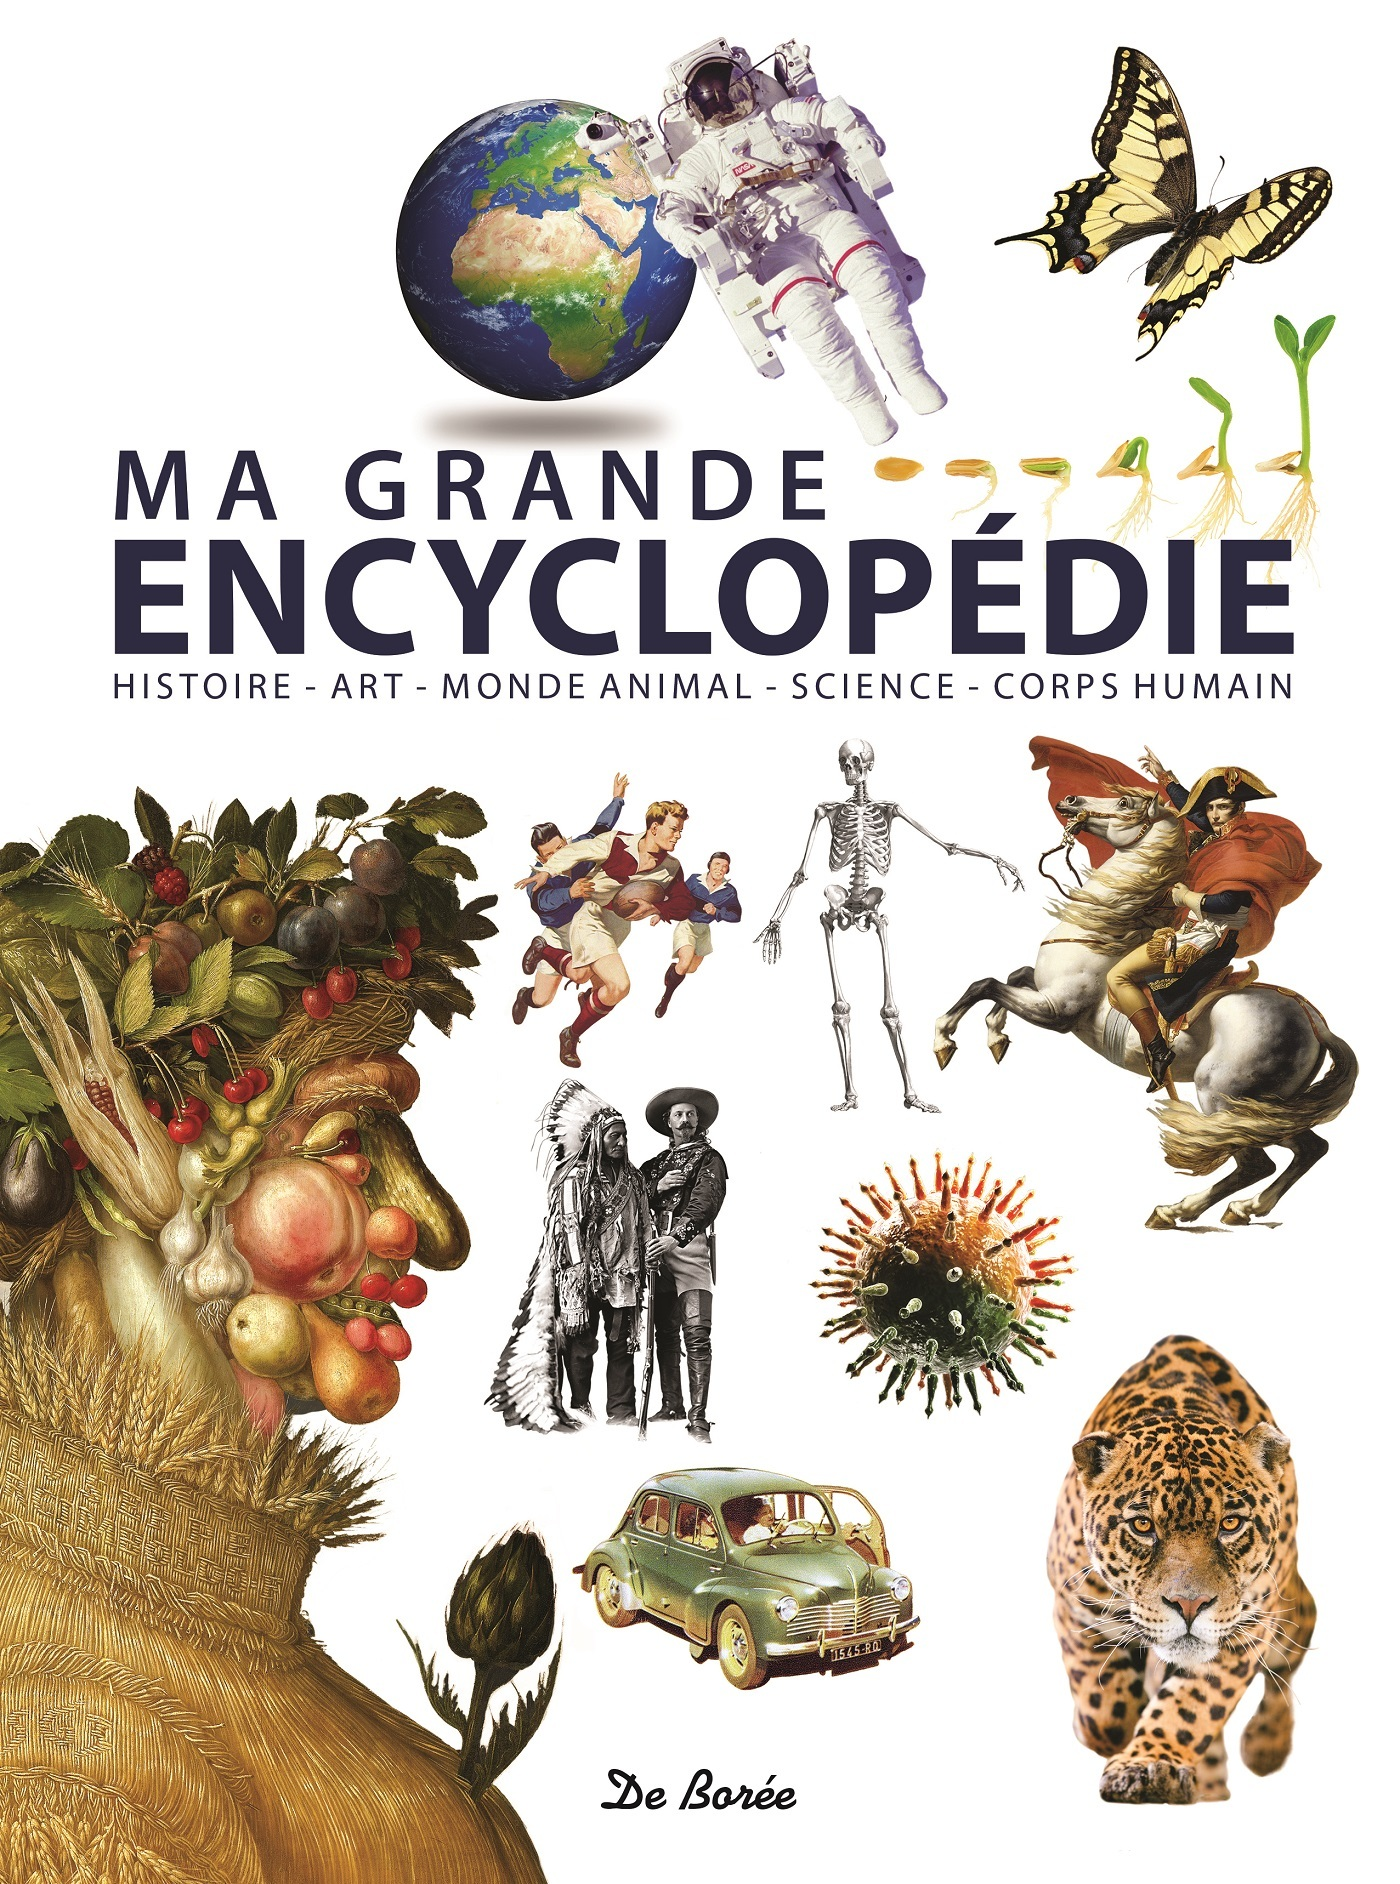 MA GRANDE ENCYCLOPEDIE GEOGRAPHIE, ANIMAUX, HISTOIRE, ART, SCIENCE ET TECHNOLOGIE, CORPS HUMAIN